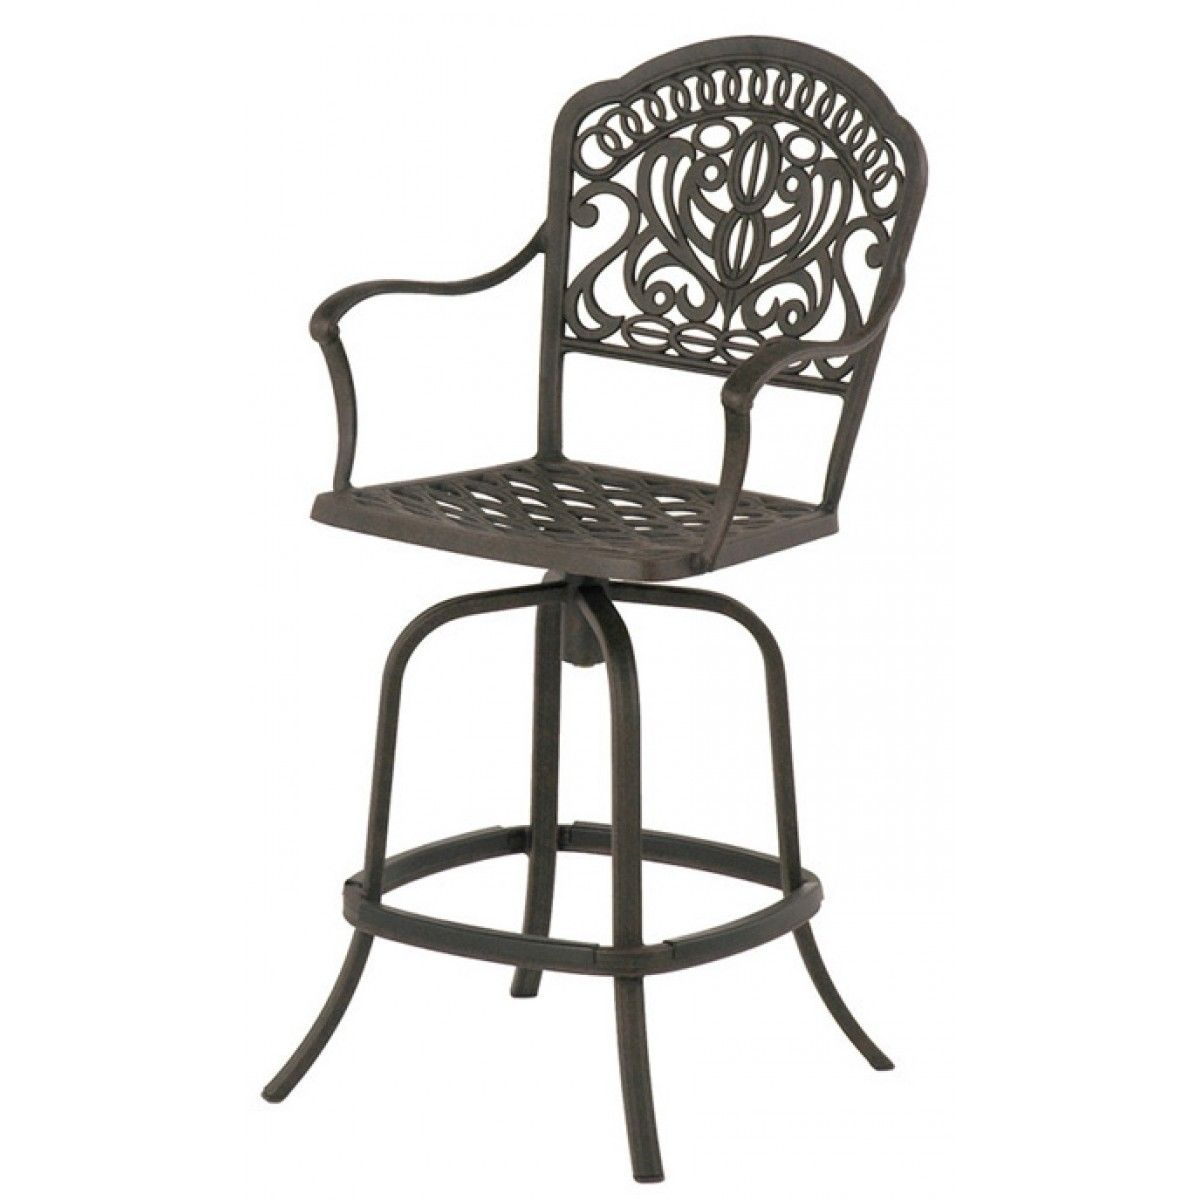 Groovy Hanamint Tuscany Cast Aluminum Swivel Counter Stool Shown In Bralicious Painted Fabric Chair Ideas Braliciousco